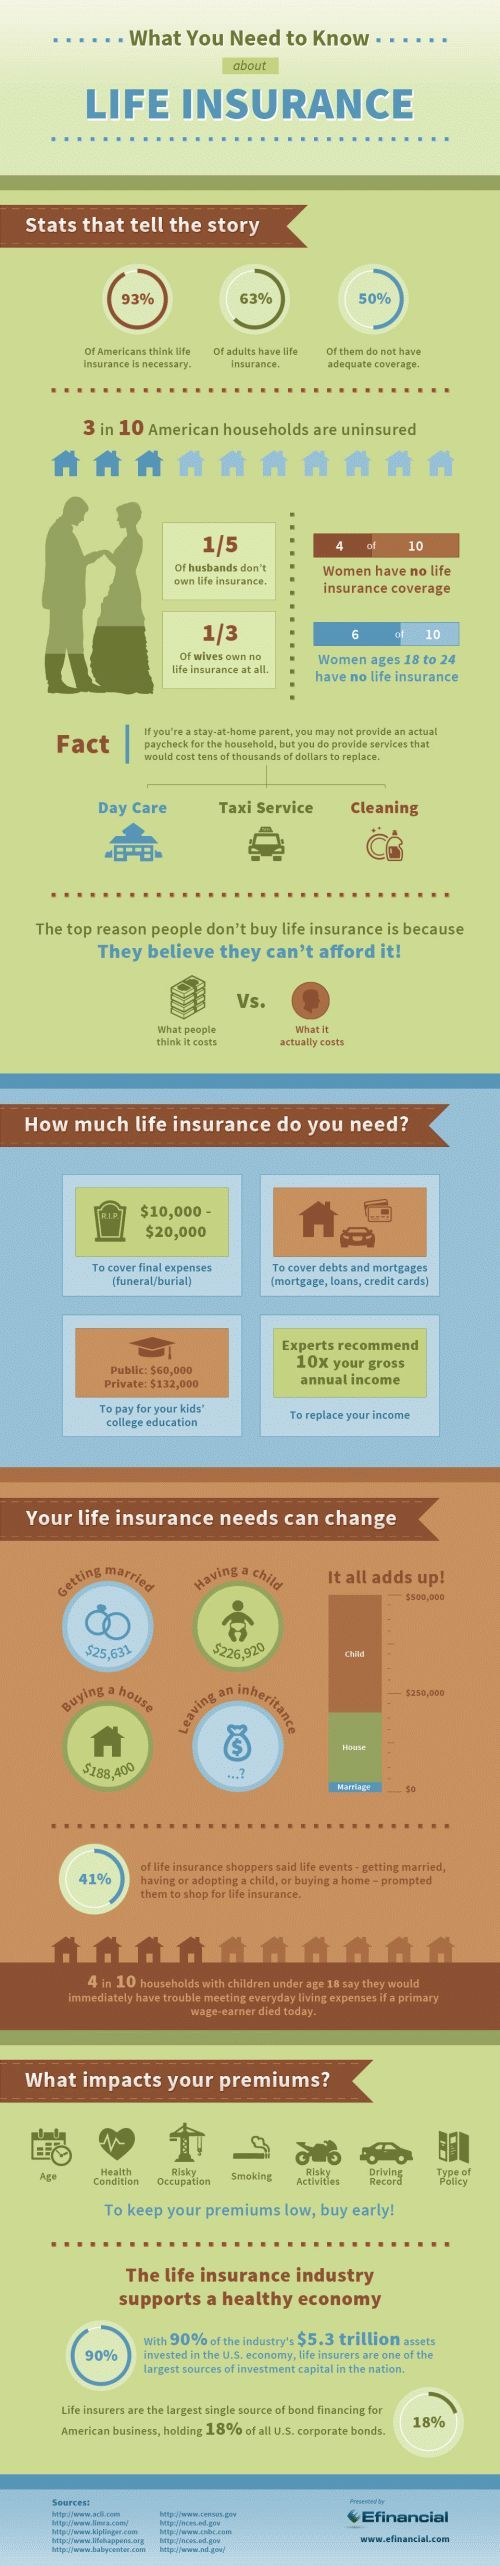 Life Insurance Quotes Online 286 Best Insurance Images On Pinterest  Personal Finance Frugal